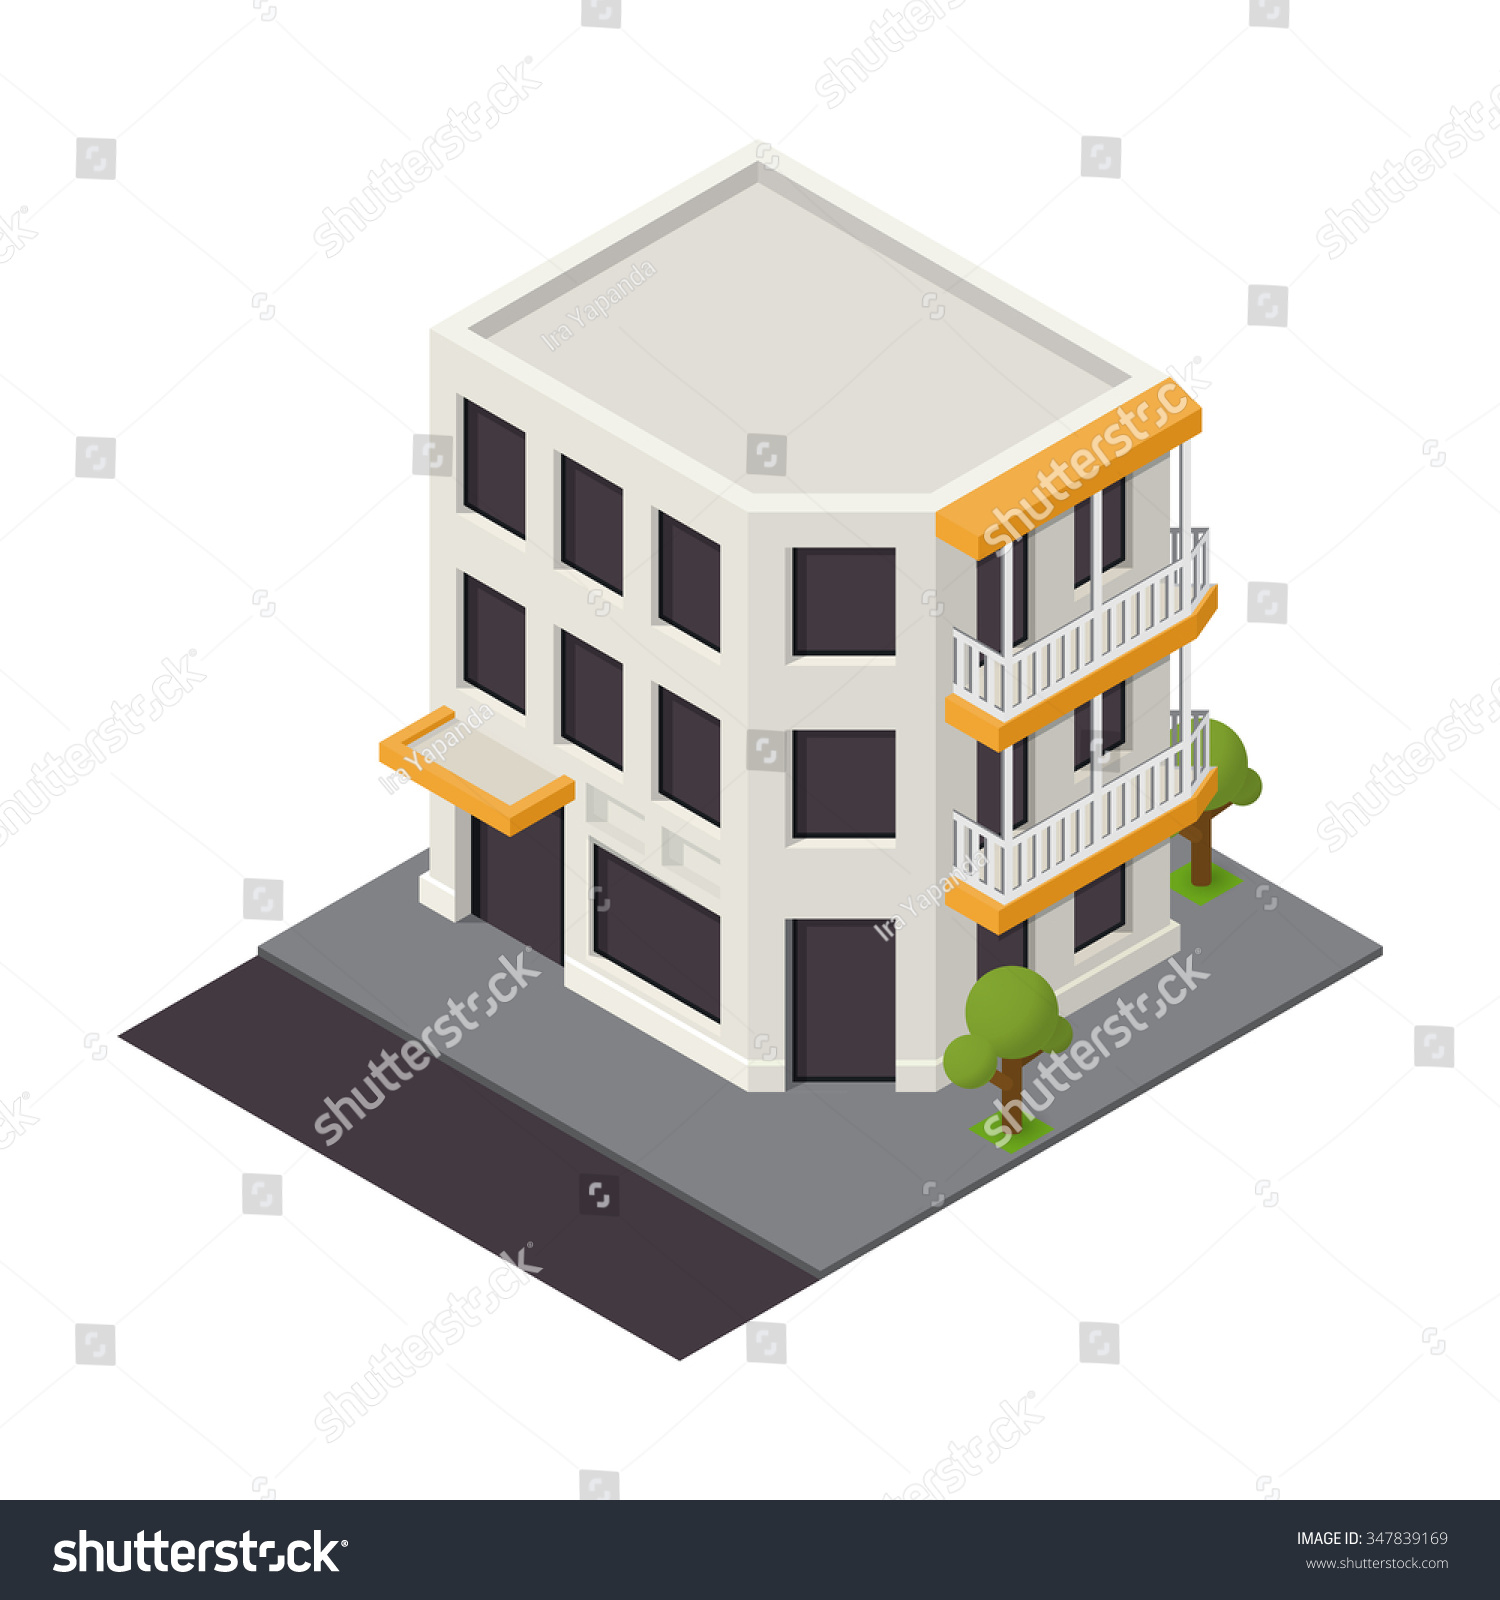 vector isometric building icon 3d city stock vector